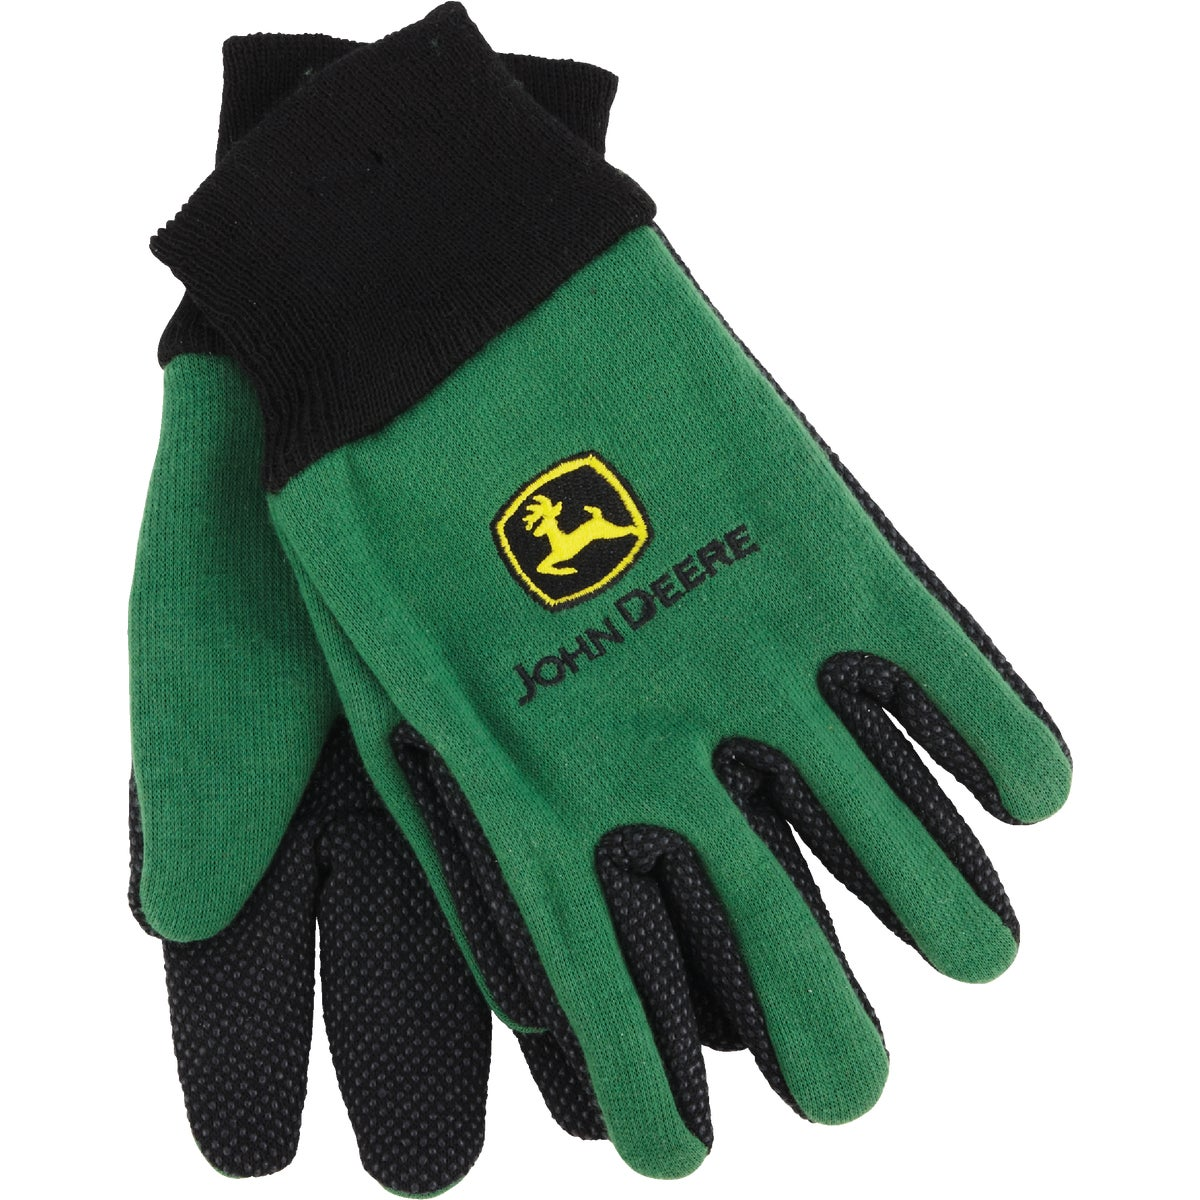 YOUTH GREEN JERSEY GLOVE - JD00002/Y by West Chester Incom